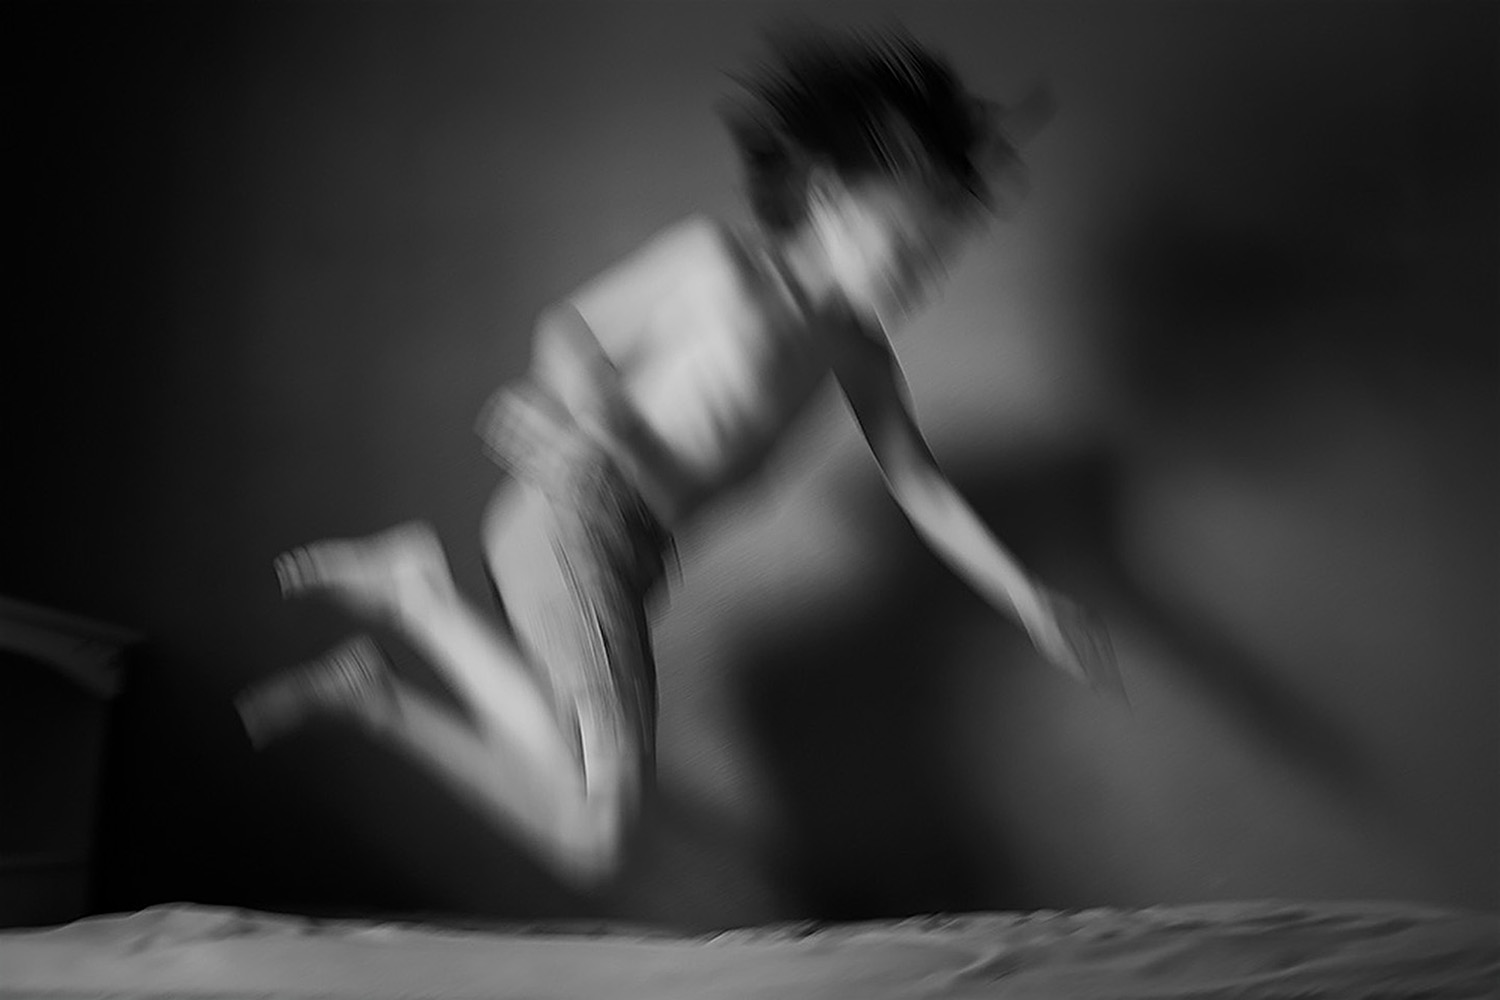 Child leaping on a bed